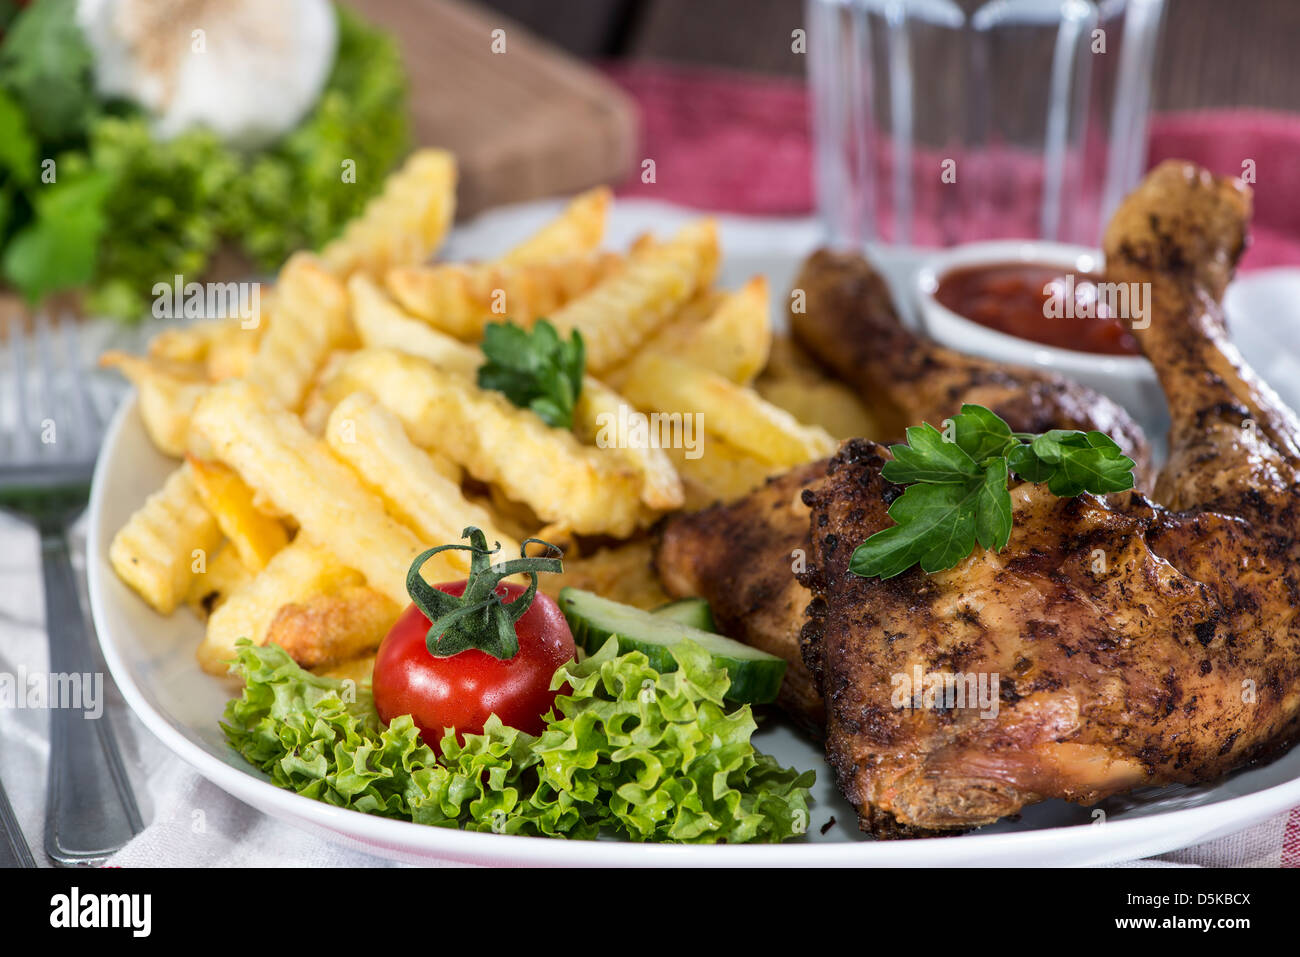 Grilled Chicken Legs with Chips and Sauce - Stock Image